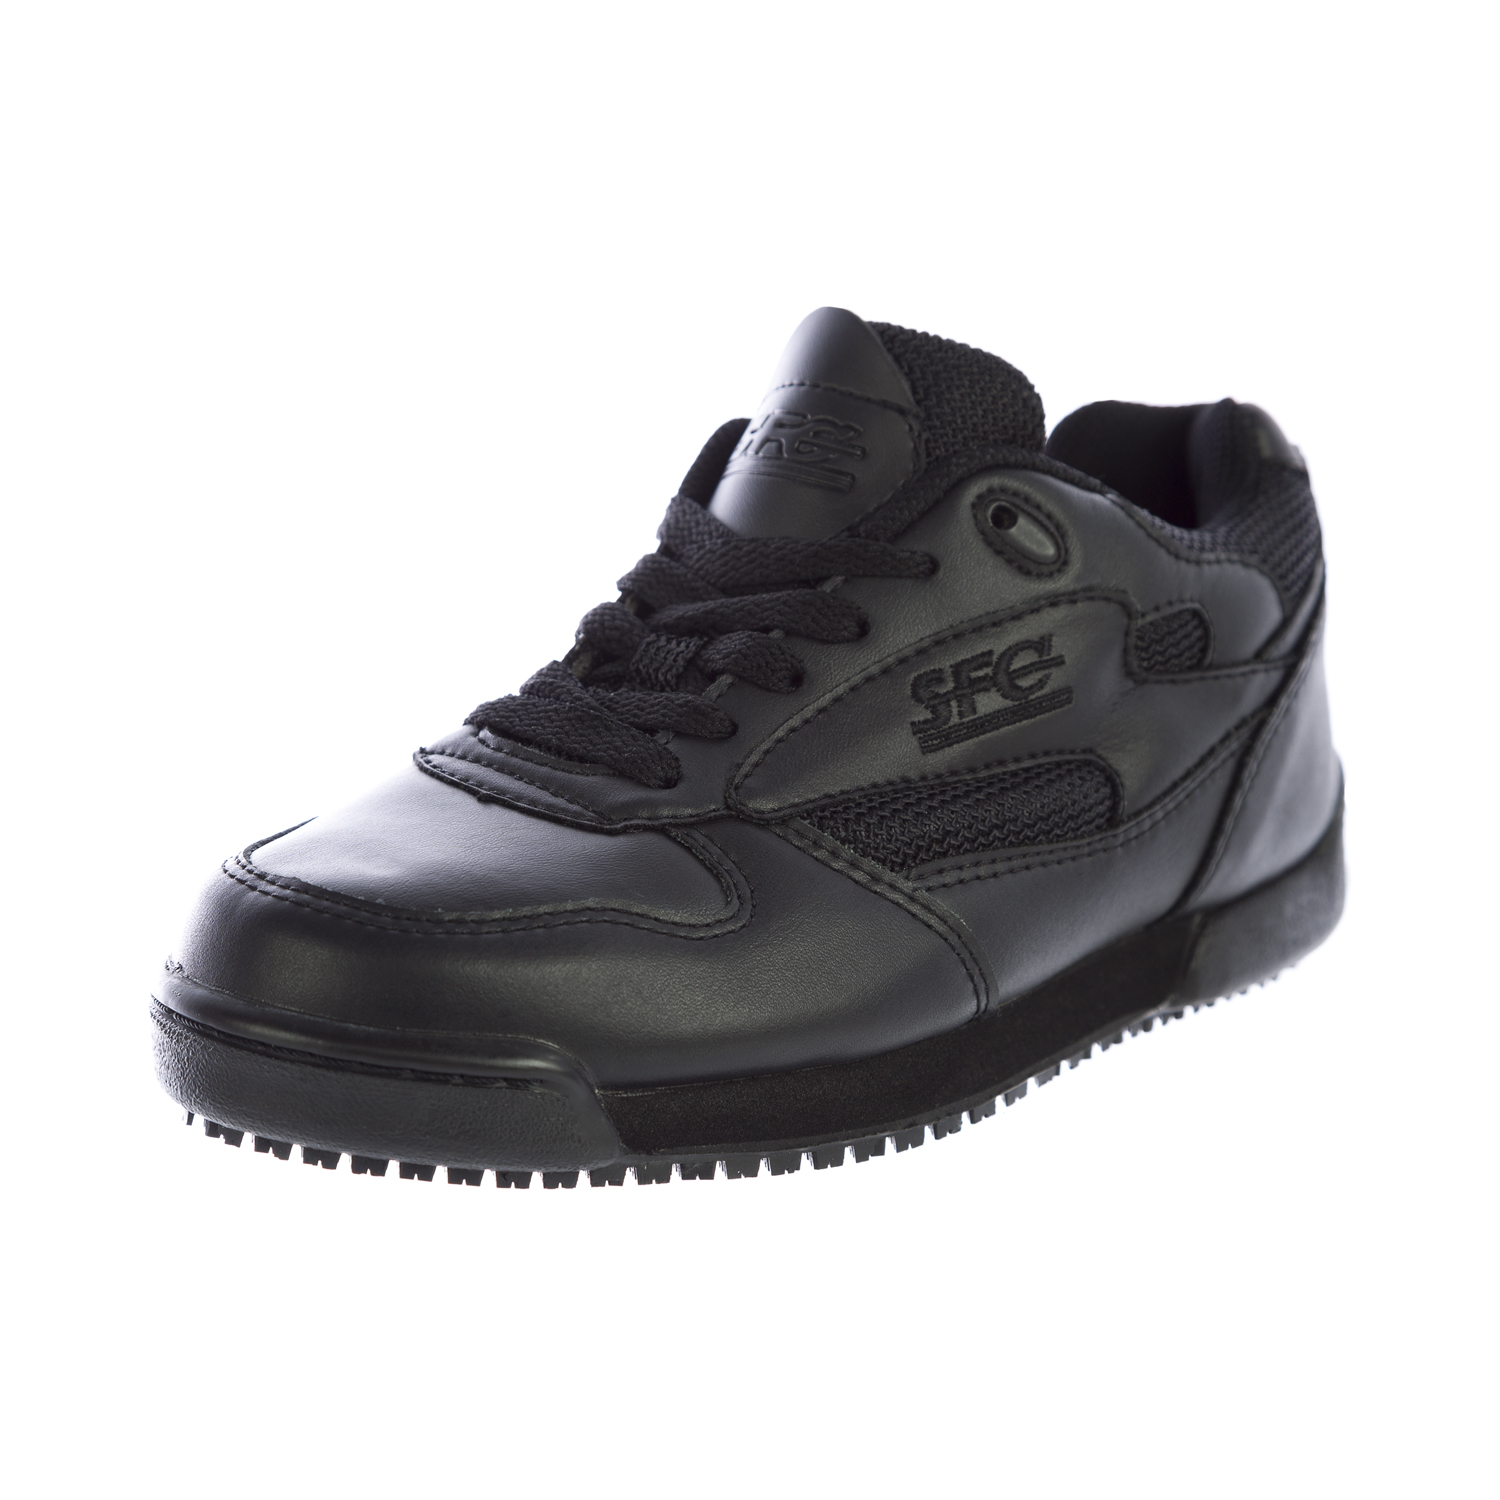 Details zu SFC Shoes for Crews Women's Proclassic III Black Leather Shoes 7001 Size 4 $56